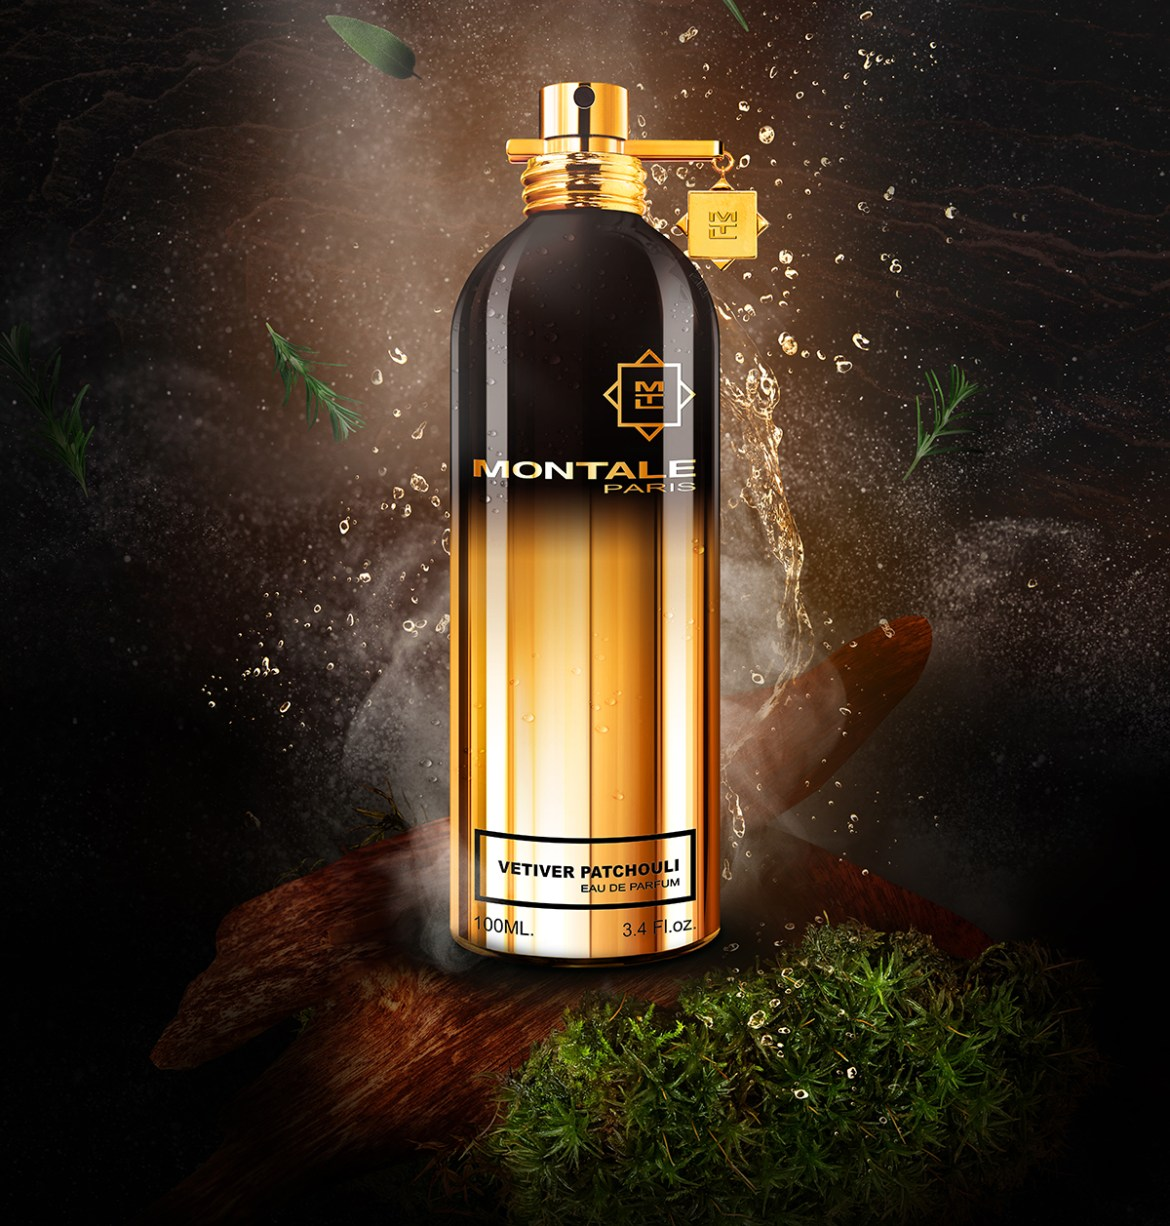 Парфюмерная вода Vetiver Patchouli от Montale